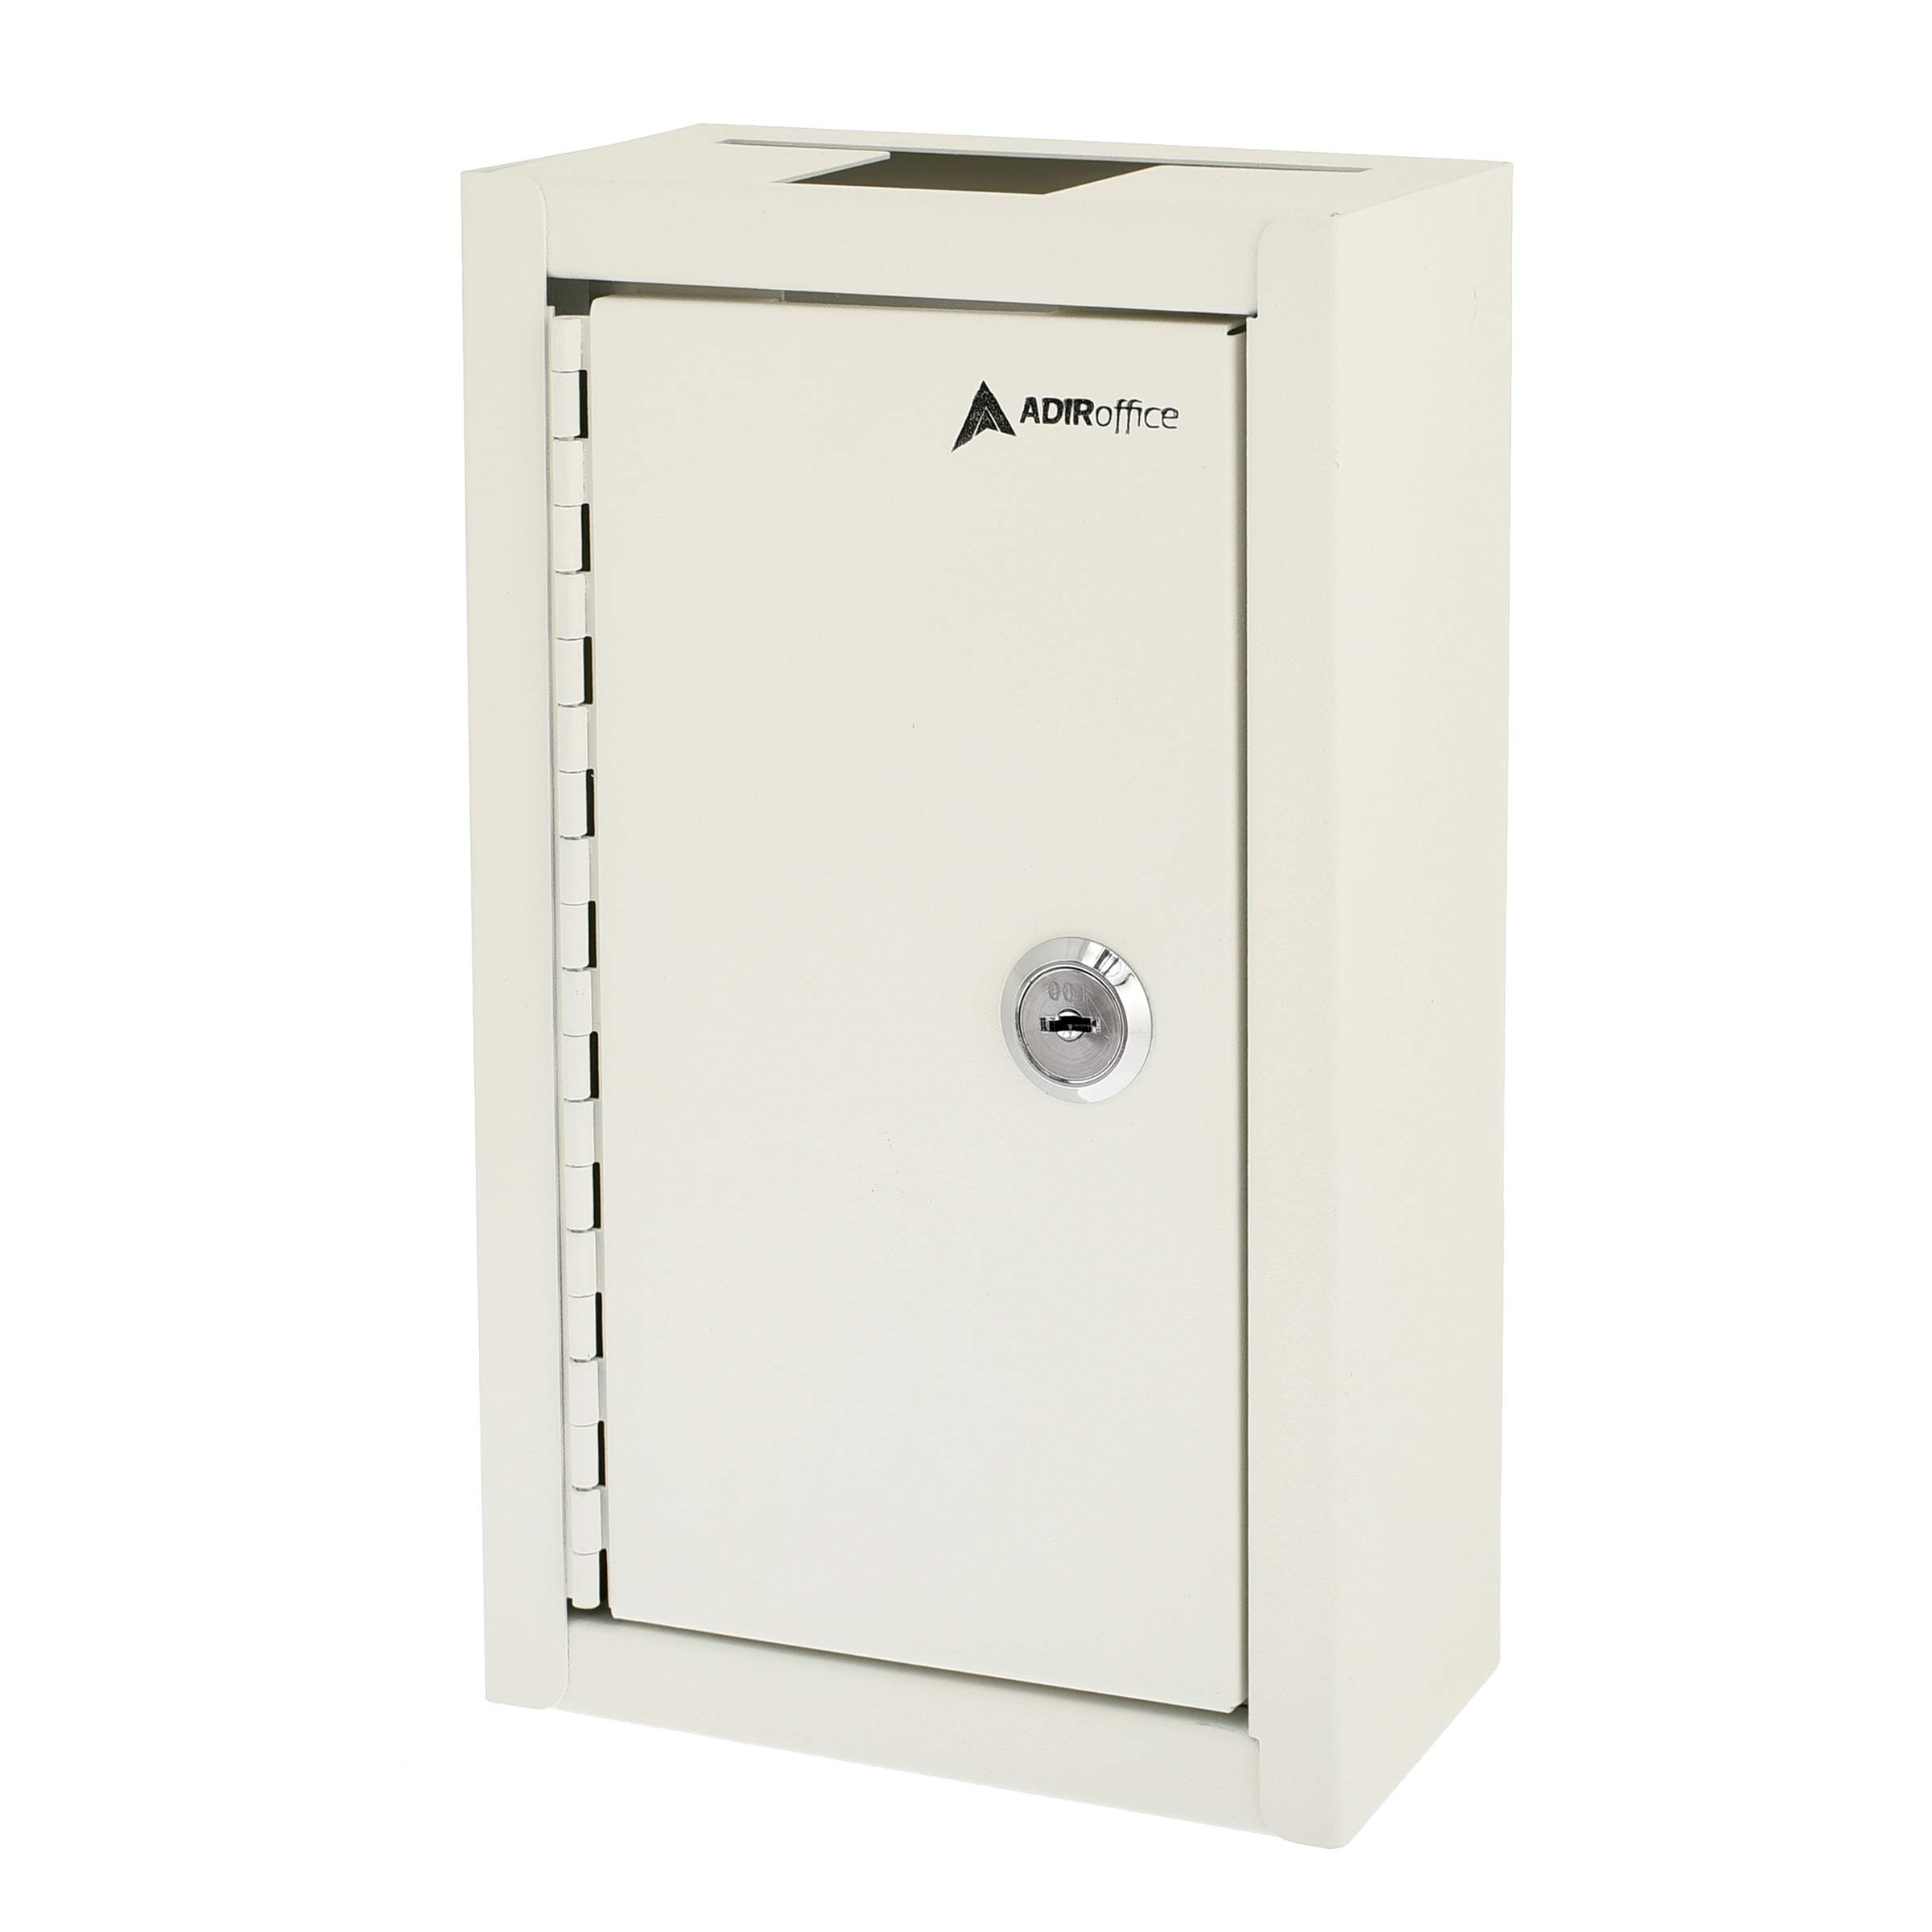 AdirOffice Large Key Drop Box - Large Capacity Commercial Grade Storage Box - Safe & Secure Parcel & Packages - for Home & Business Use (White) by AdirOffice